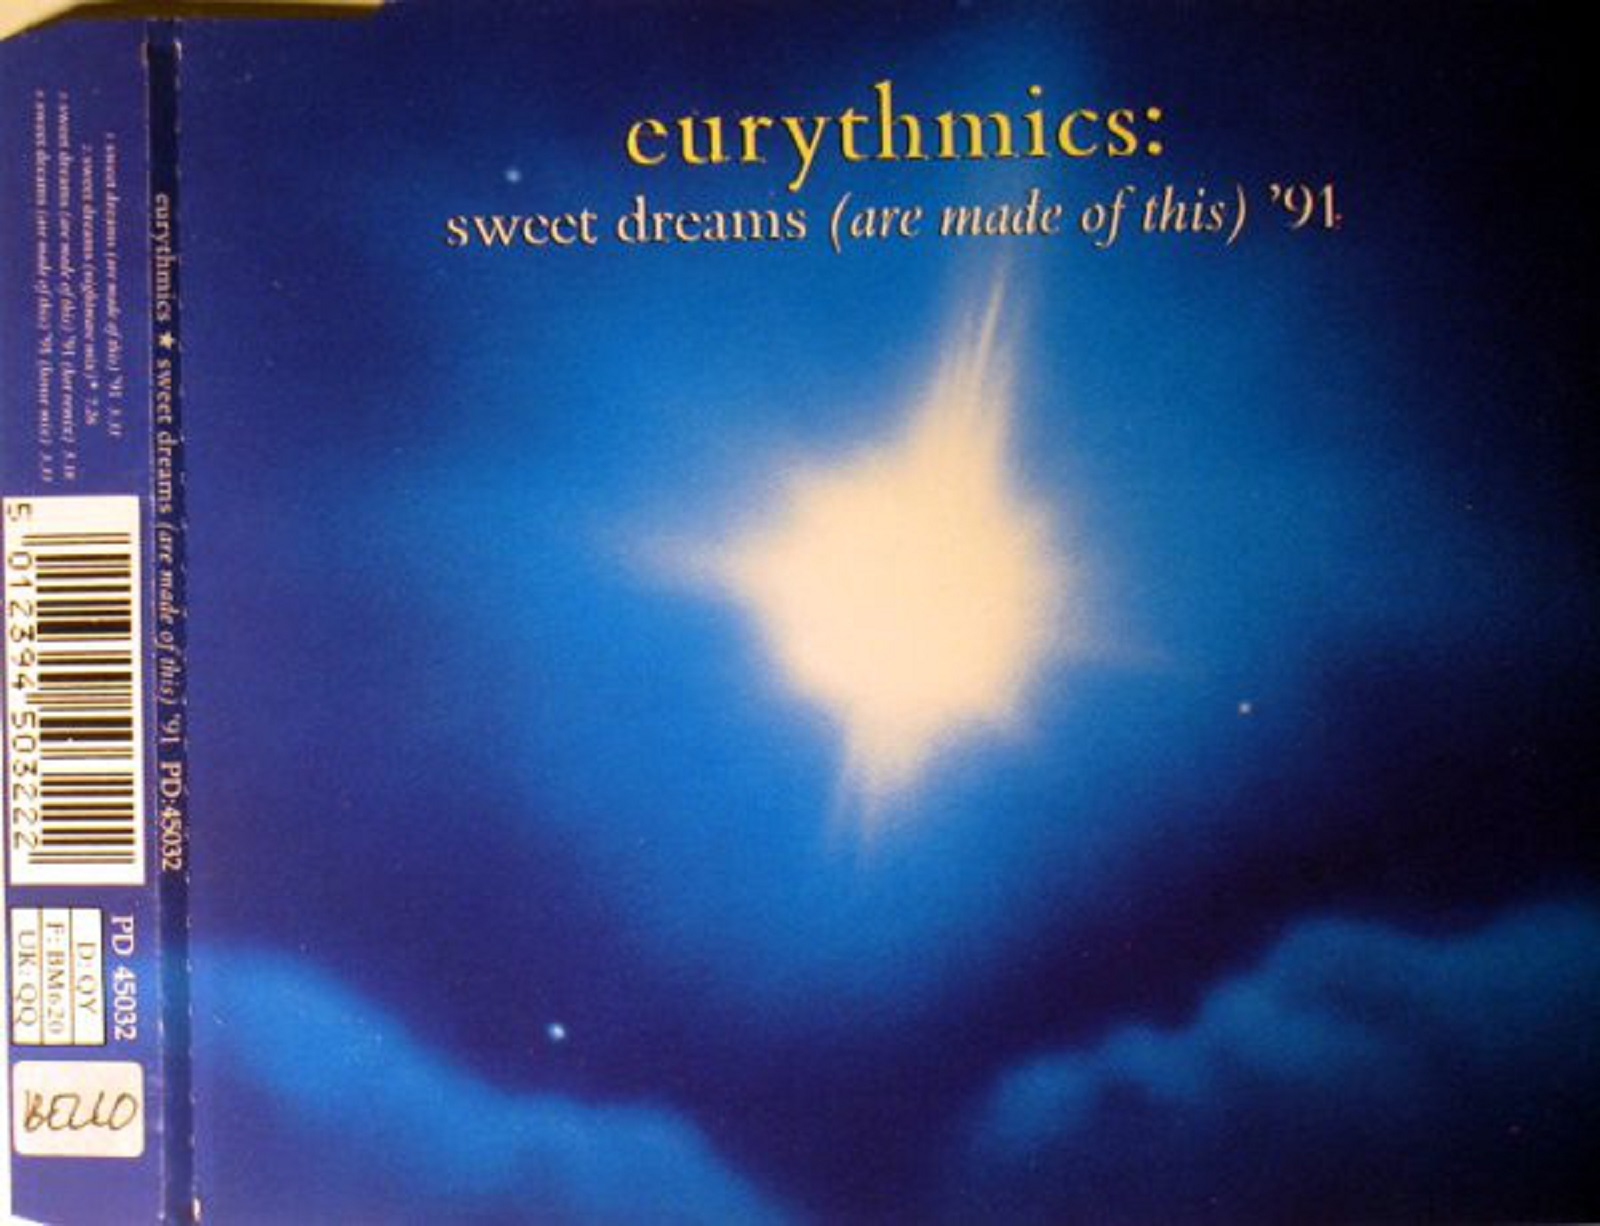 eurythmics - sweet dreams  are made of this   u0026 39 91  cdm  flac